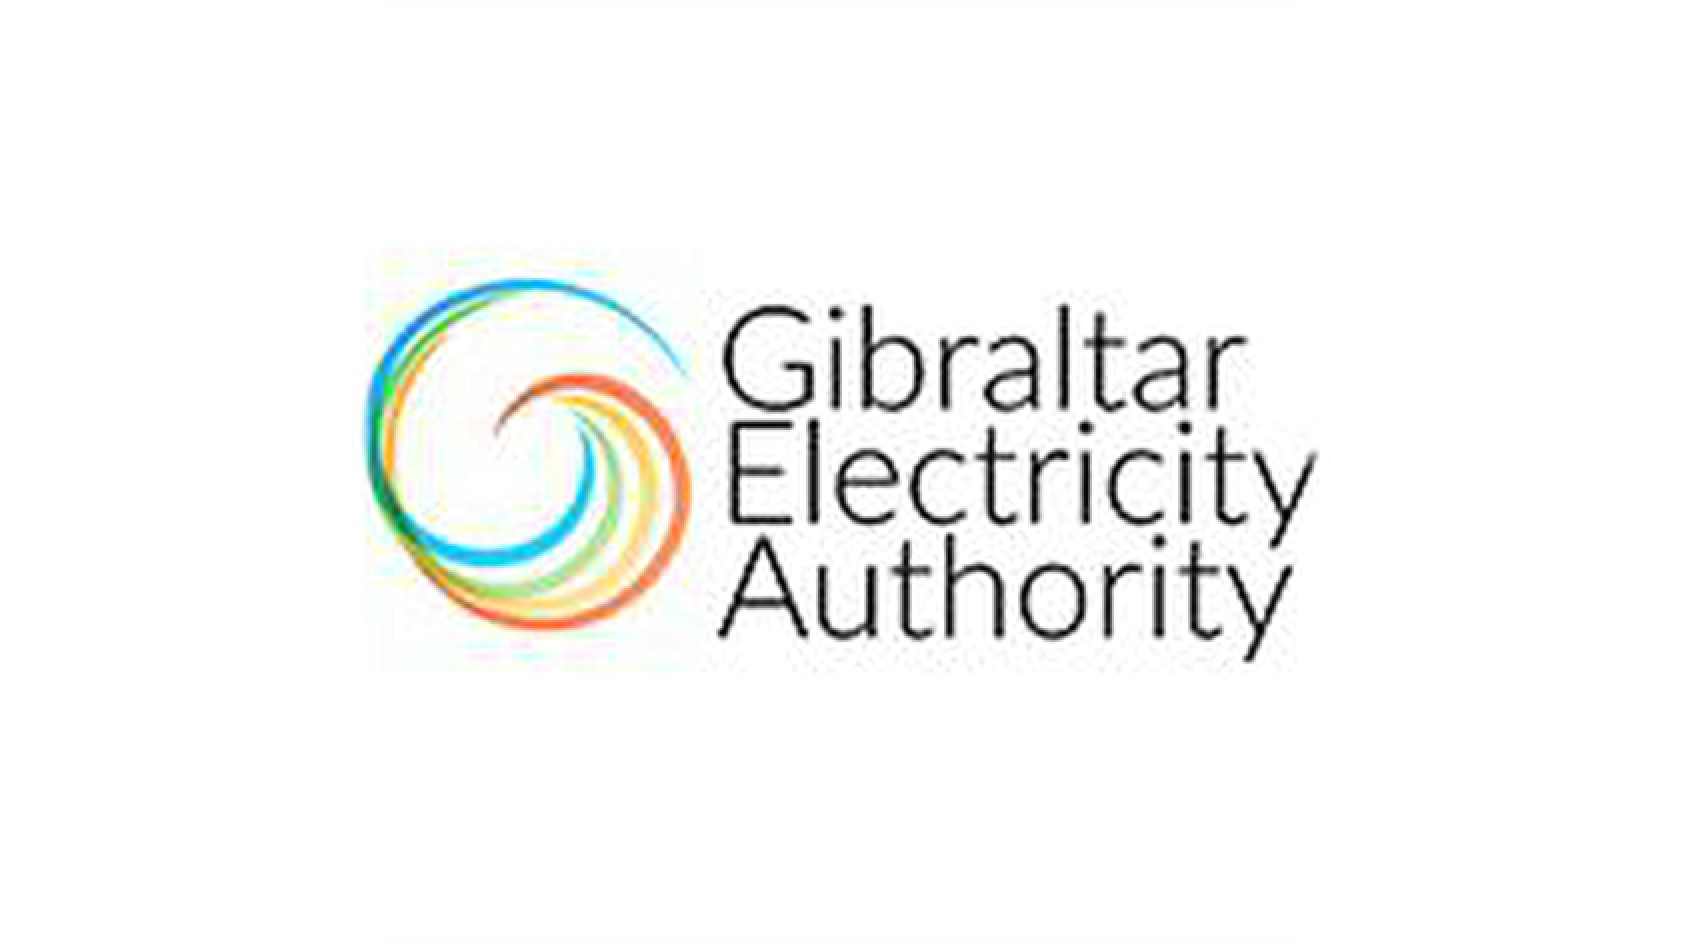 Gibraltar-wide power cut believed to be caused by damage to main cable by MidTown